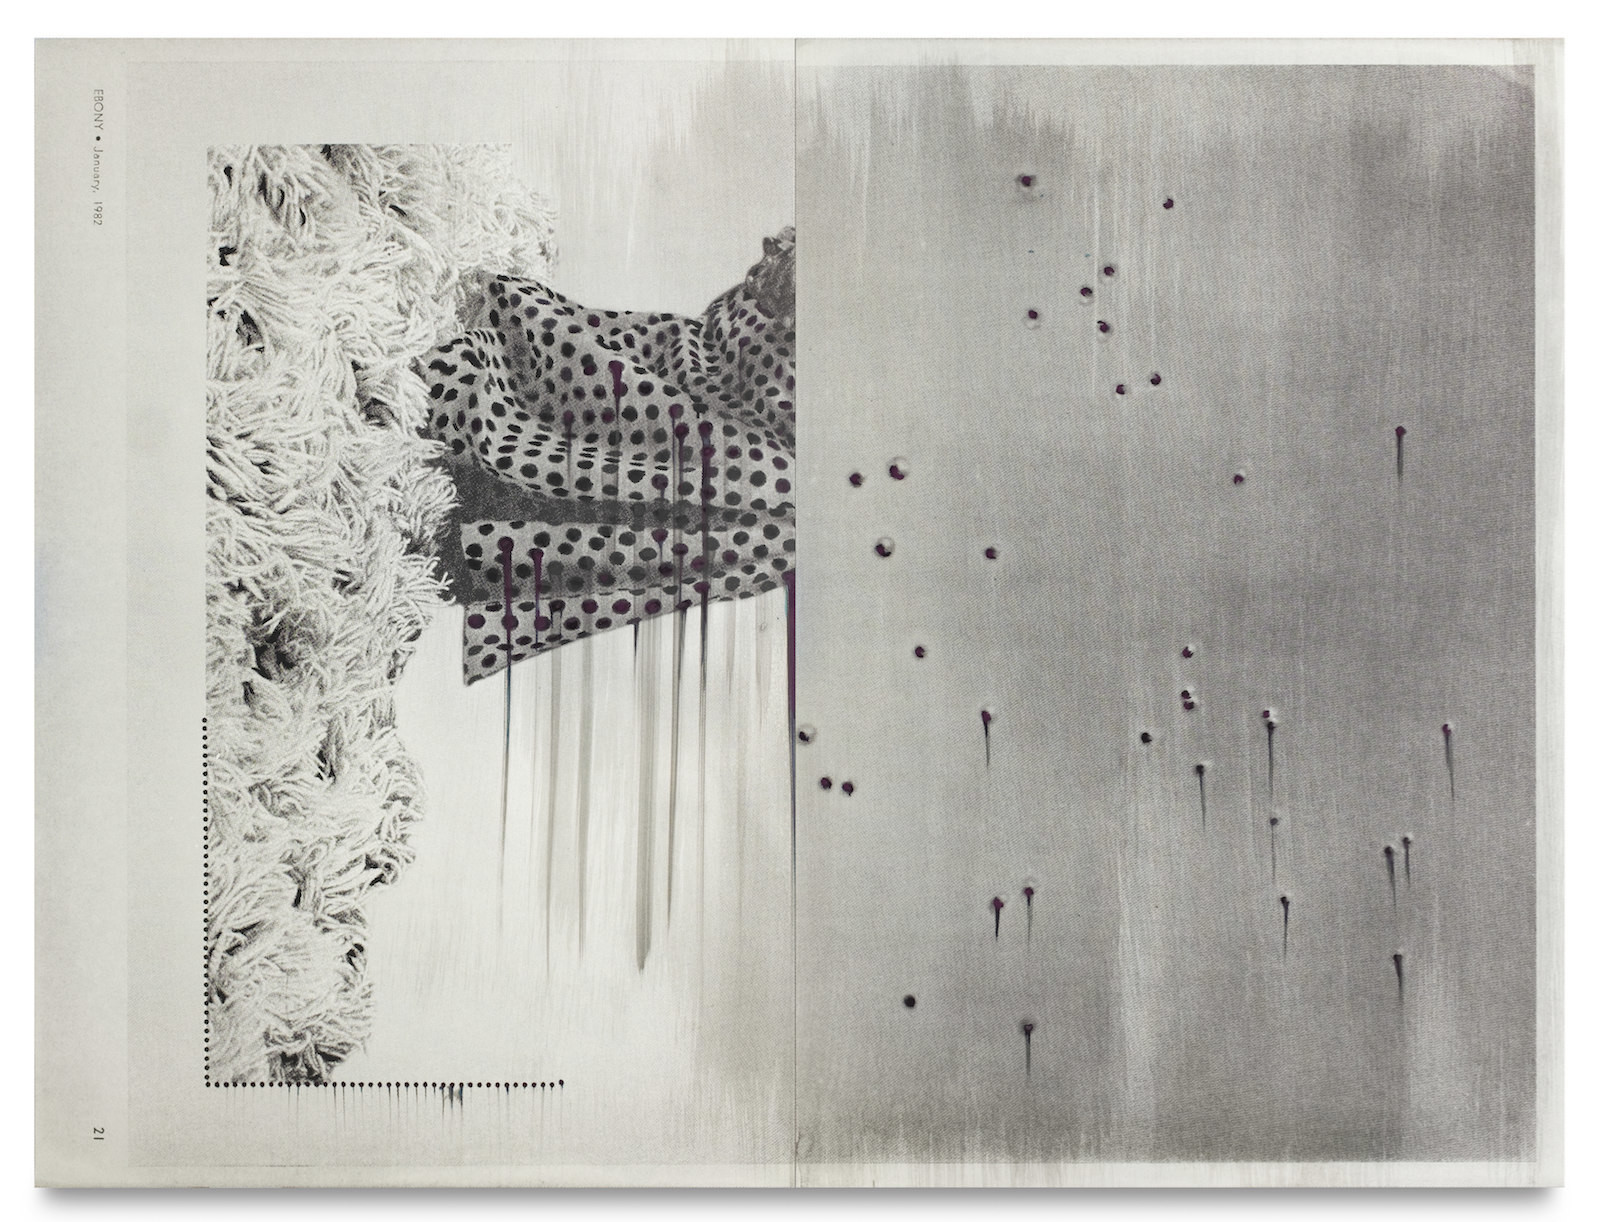 Lorna Simpson Joins Hauser & Wirth, New York Gallery